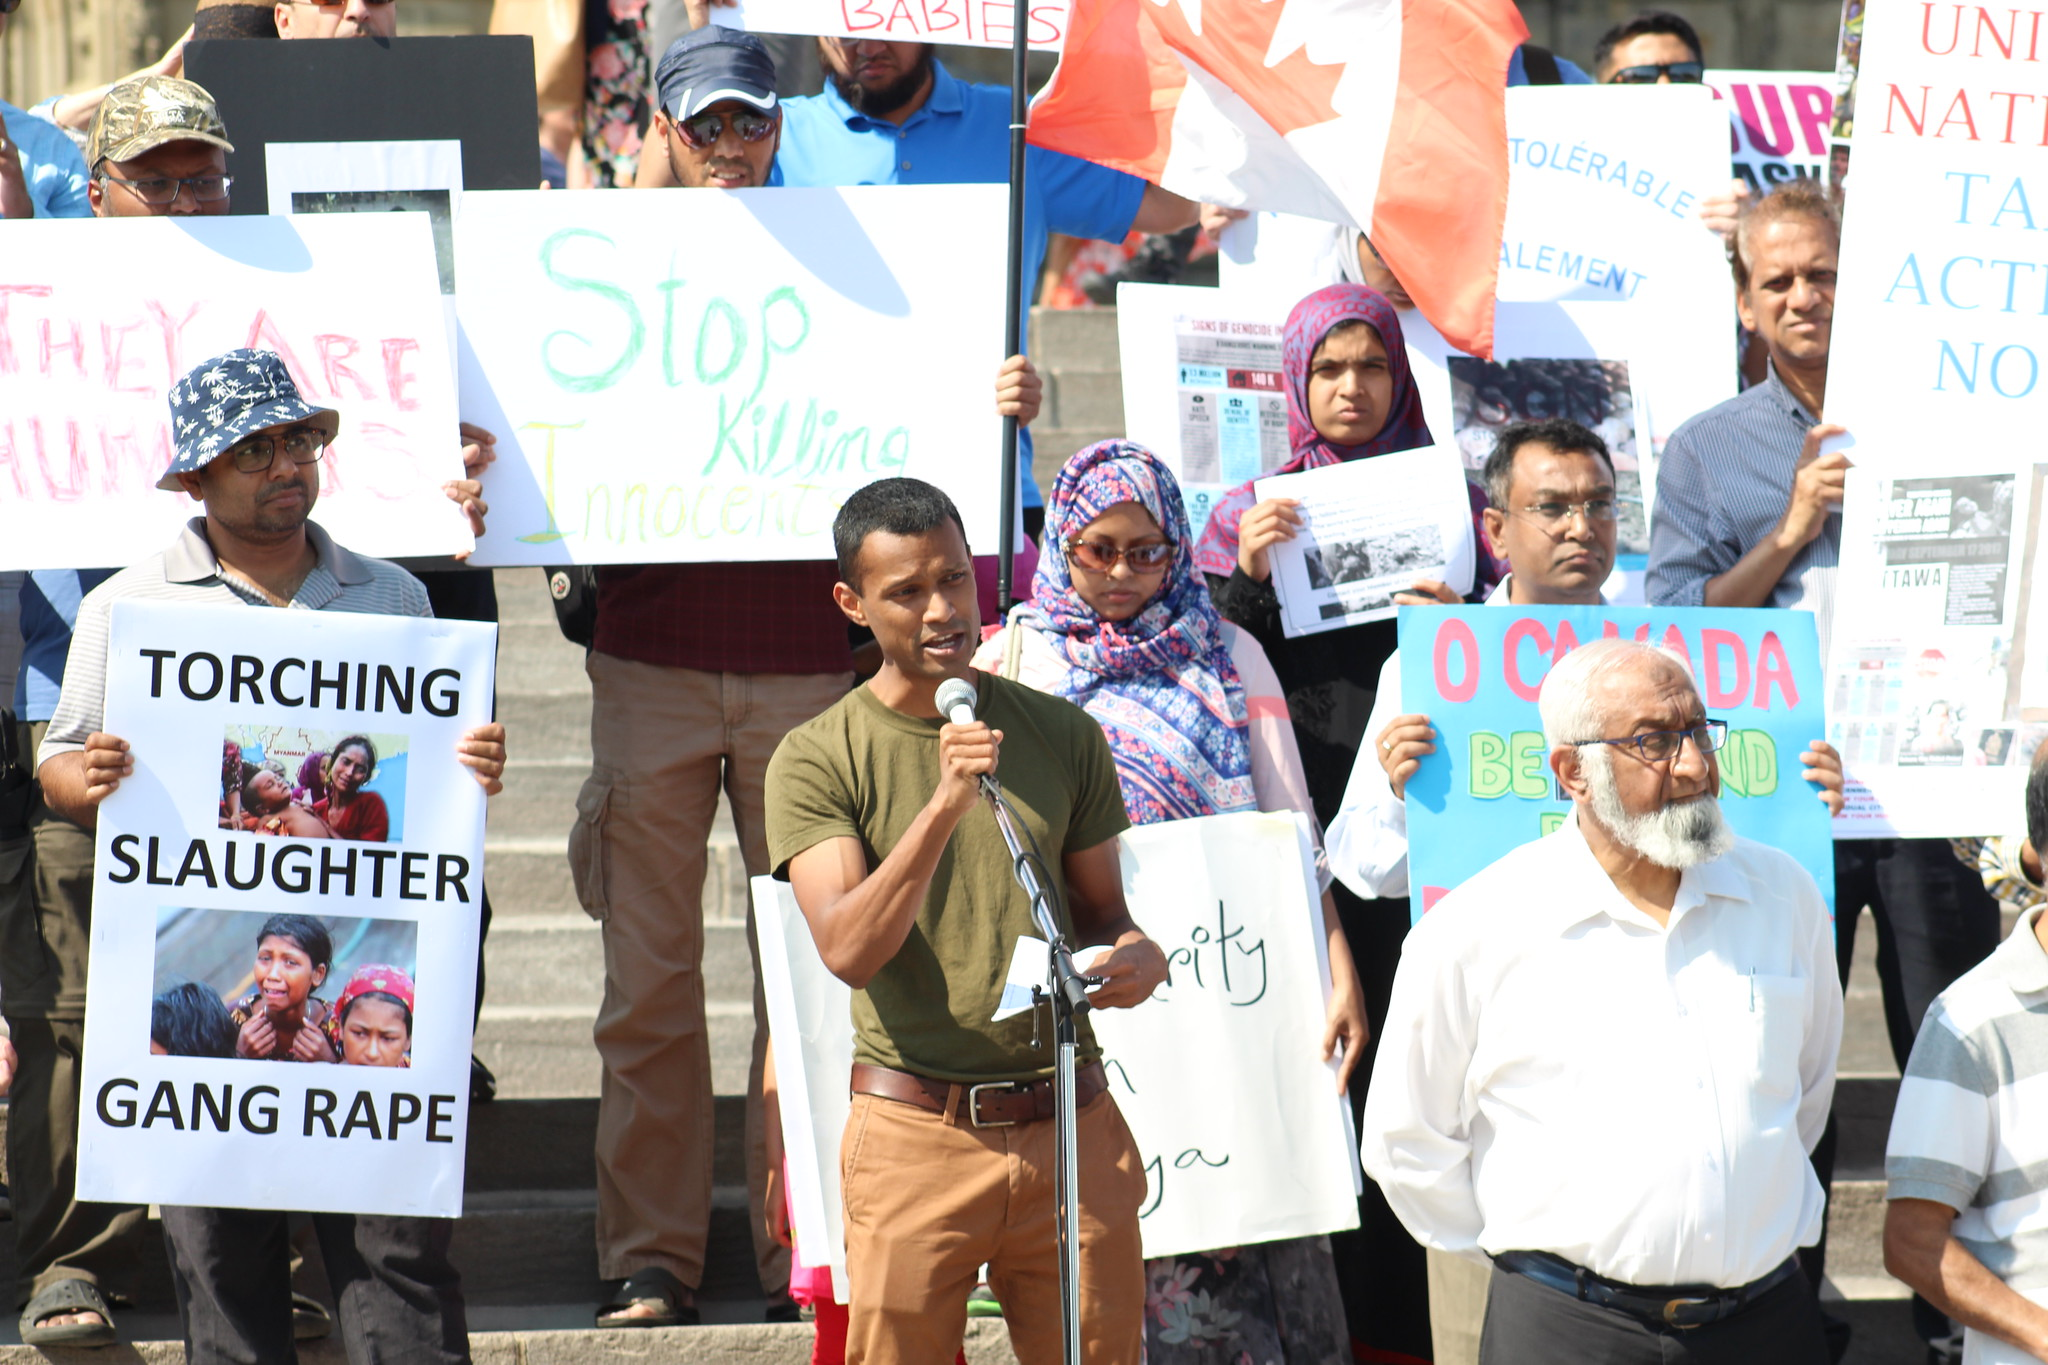 Hundreds of protesters gather outside Parliament Hill in Ottawa, Canada to protest the ethnic cleansing of the Rohingya by the Myanmar government, August 25, 2018. (CC BY-NC 2.0/Mike Gifford)